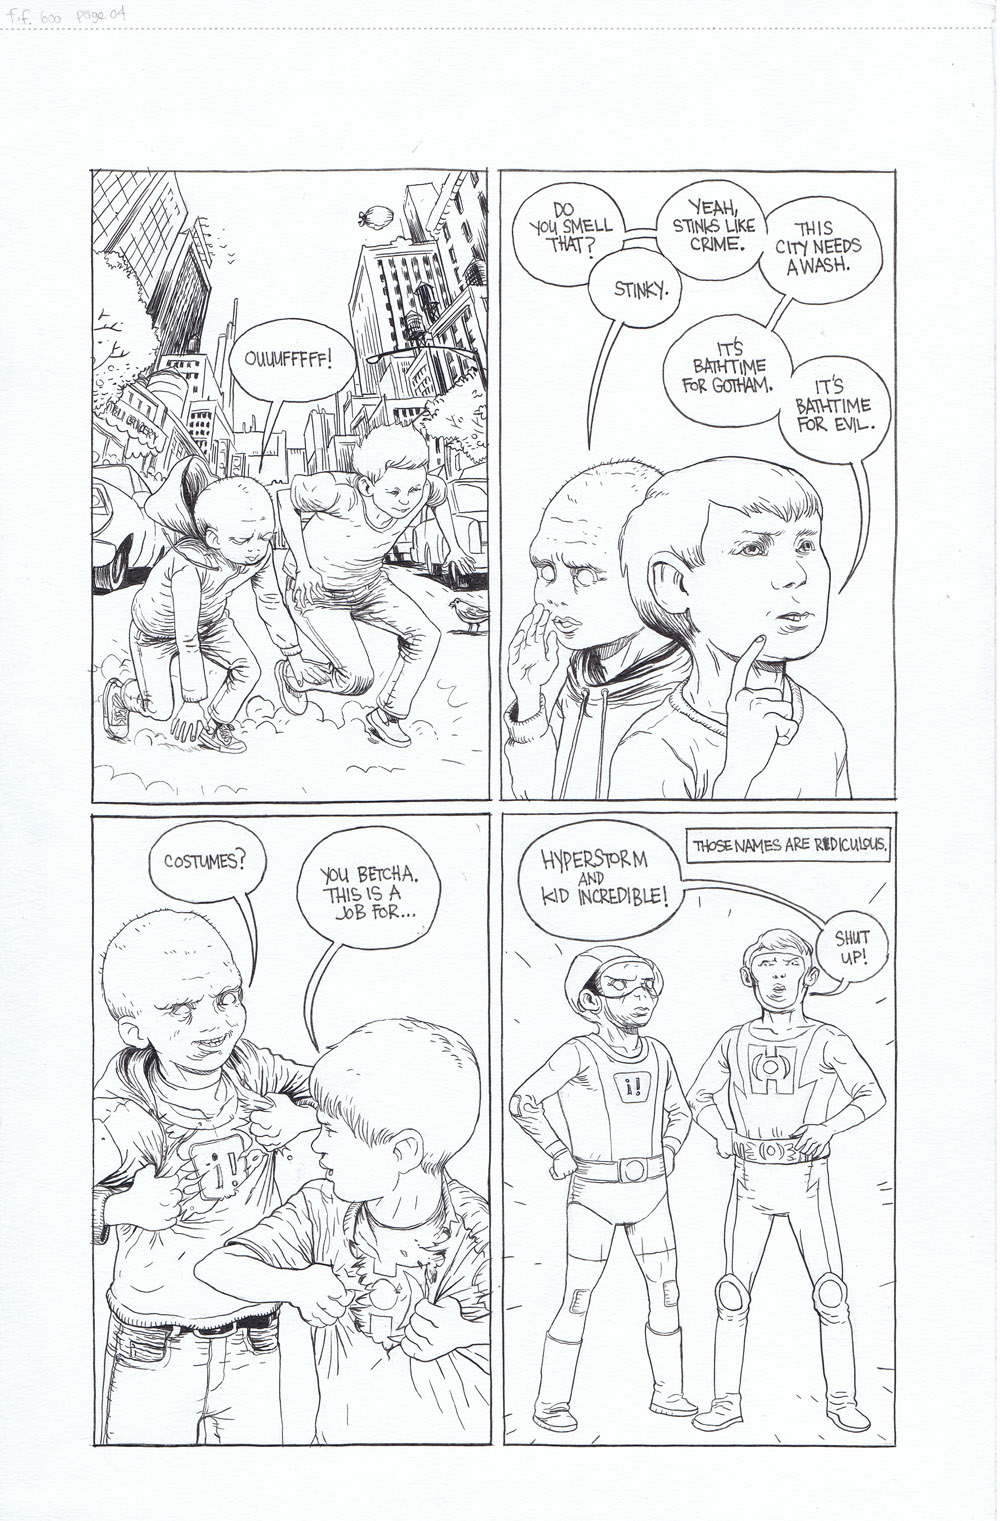 Fantastic Four 600: Remember - page 4